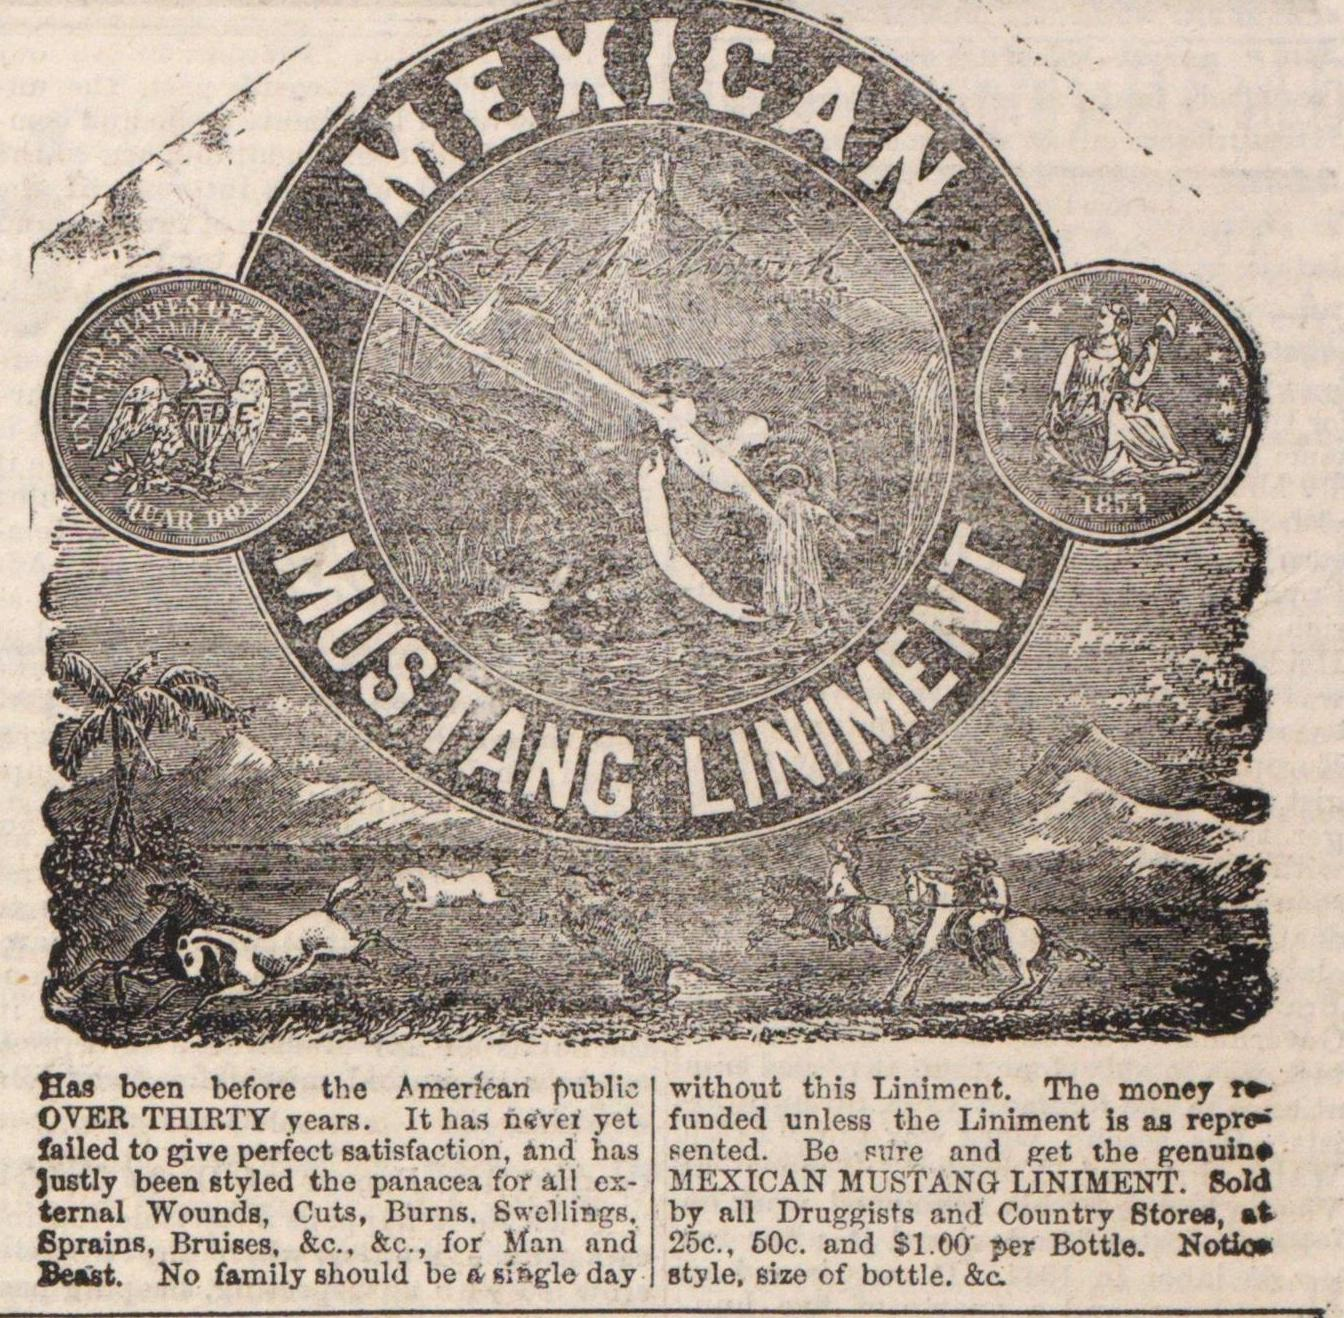 Mexican Mustang Liniment image